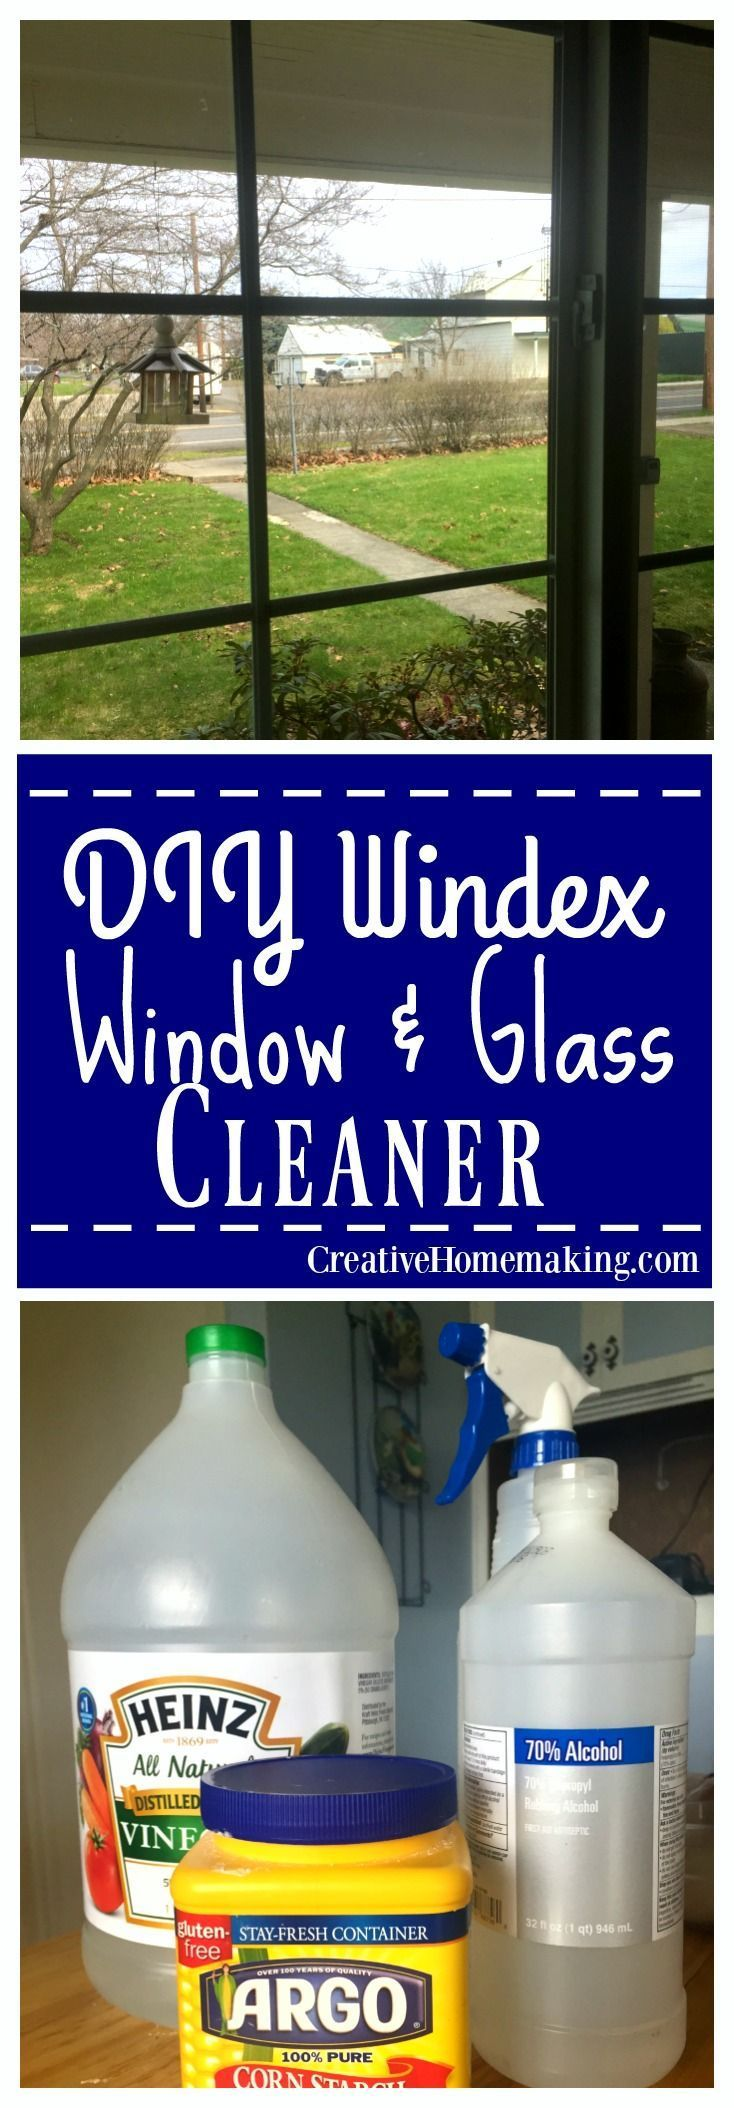 This DIY window and glass cleaner cleans as well as Windex. It is also non-toxic and costs less than fifty cents a bottle to make.